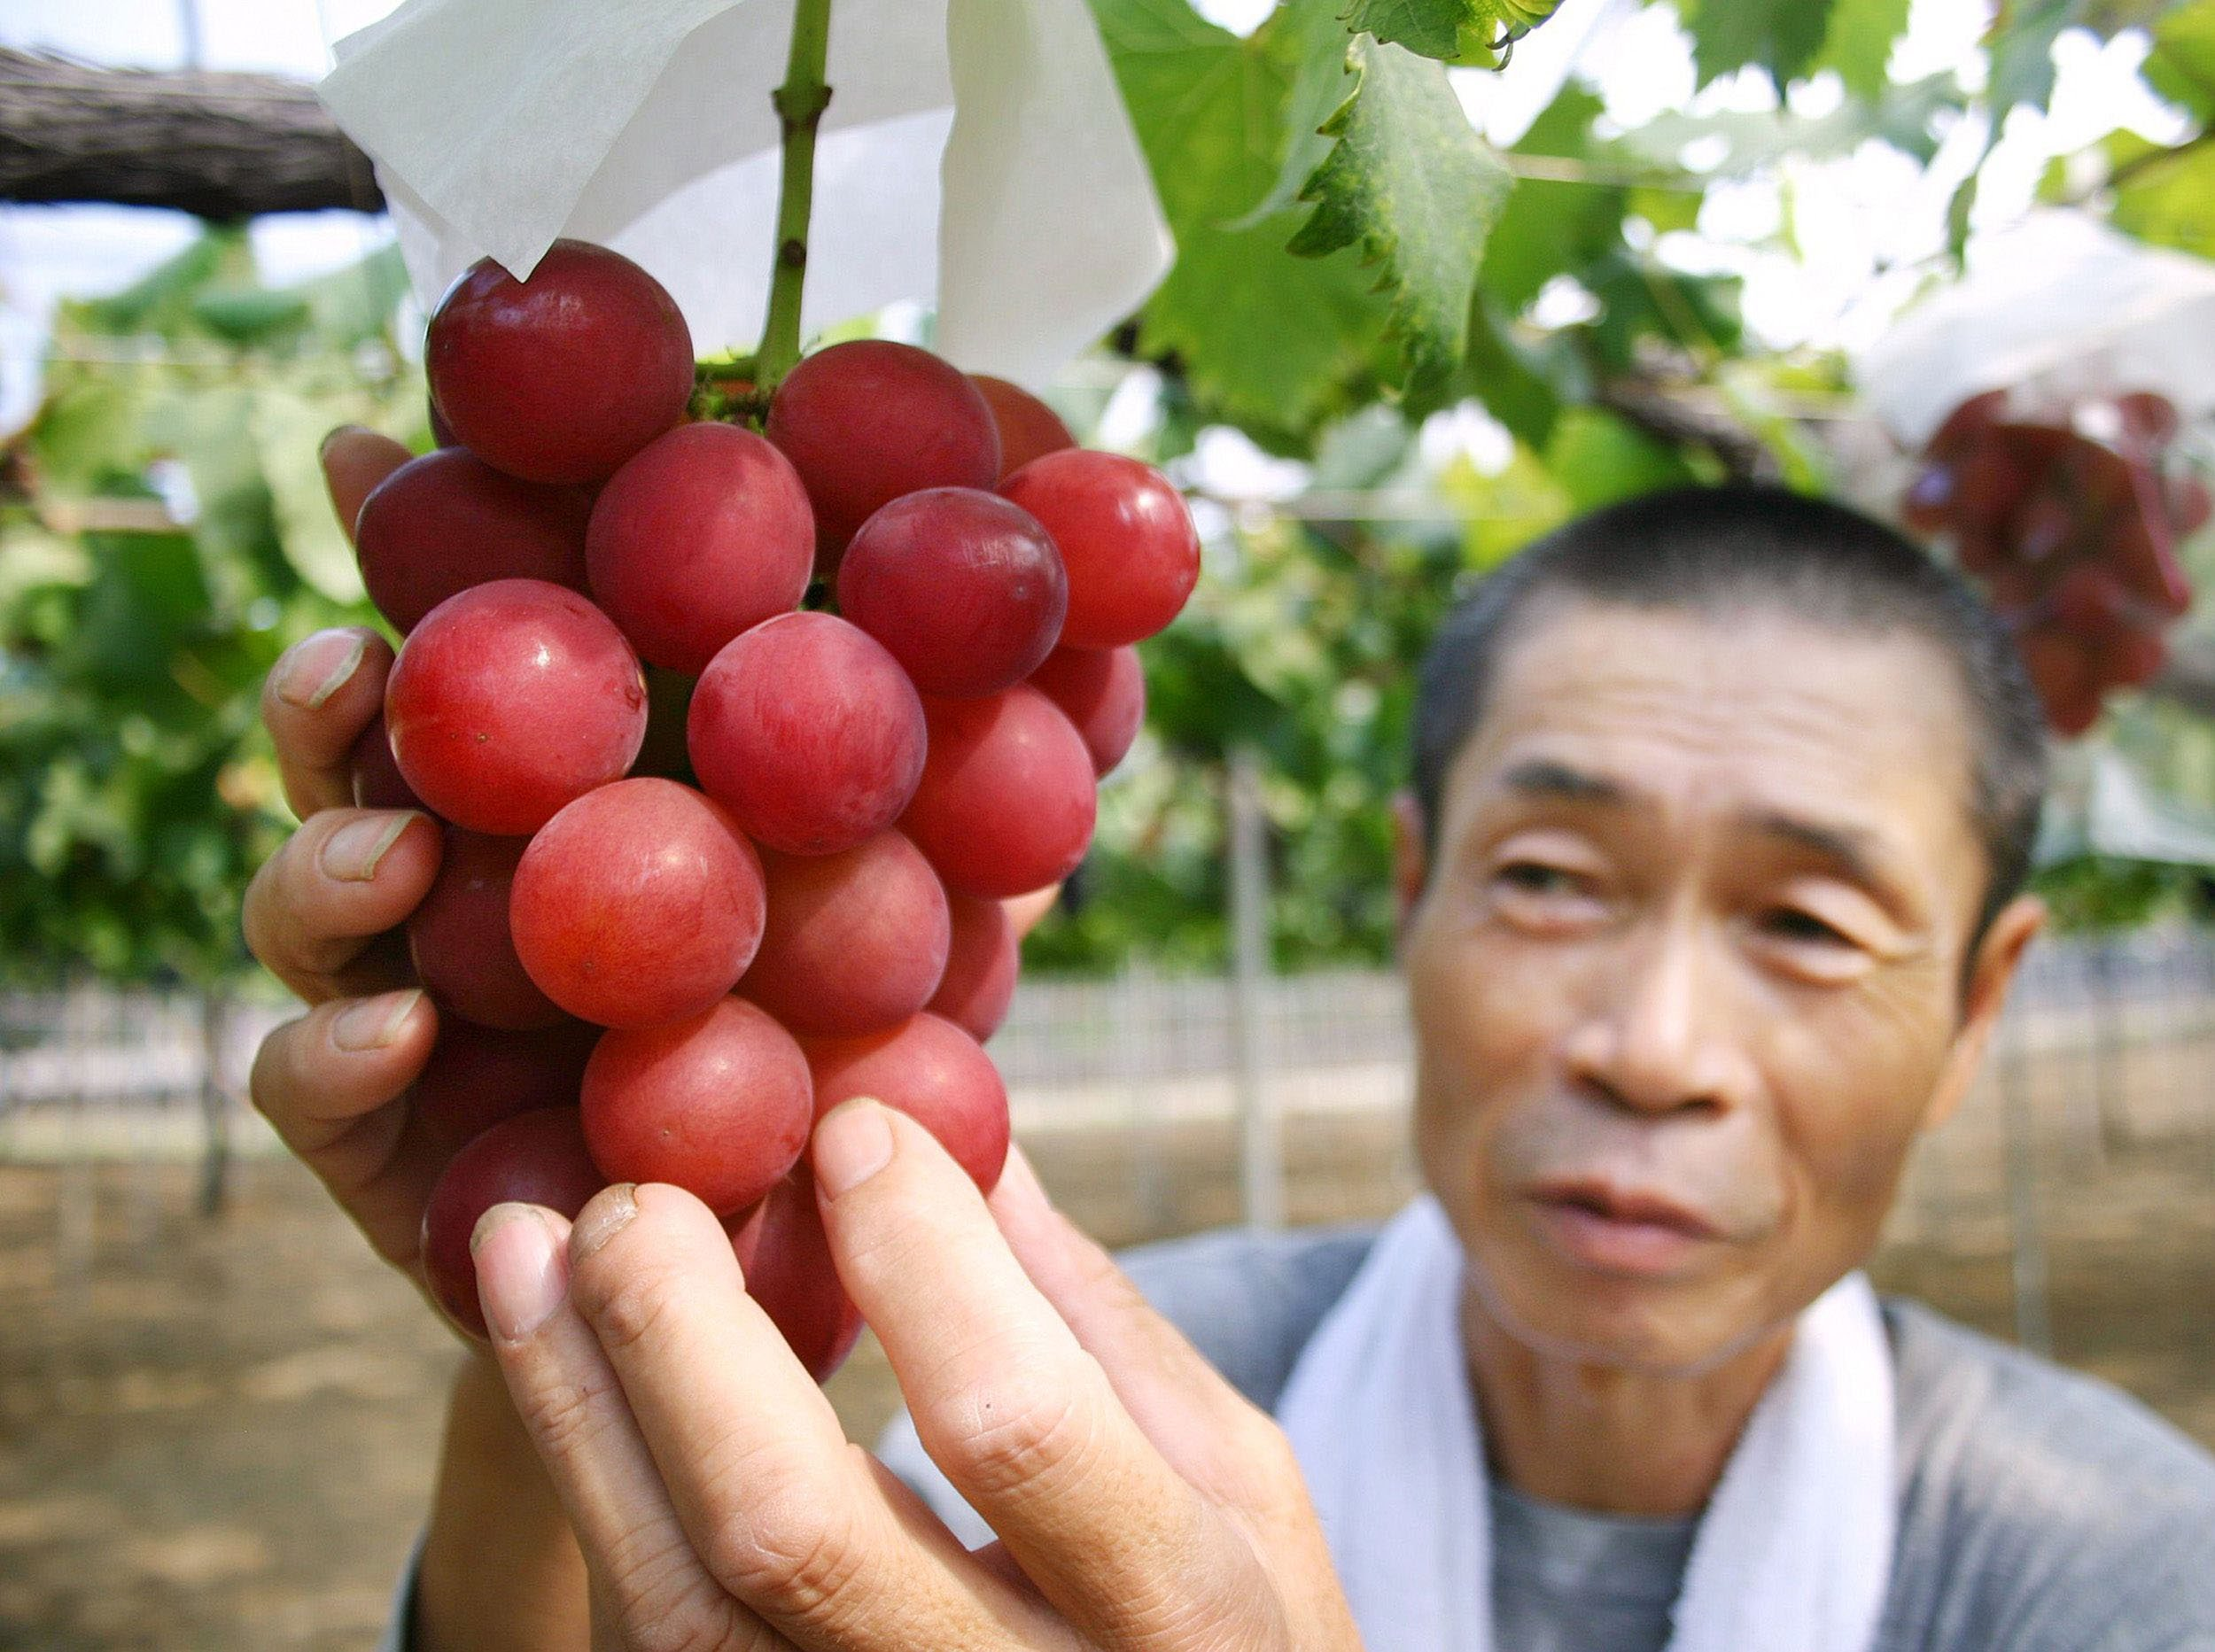 Japanese farmer Tsutomu Takemori displays a cluster of recently-developed 'Ruby Roman' grapes at his vineyard in Kahoku city in Ishikawa prefecture, northern Japan in August 2008.